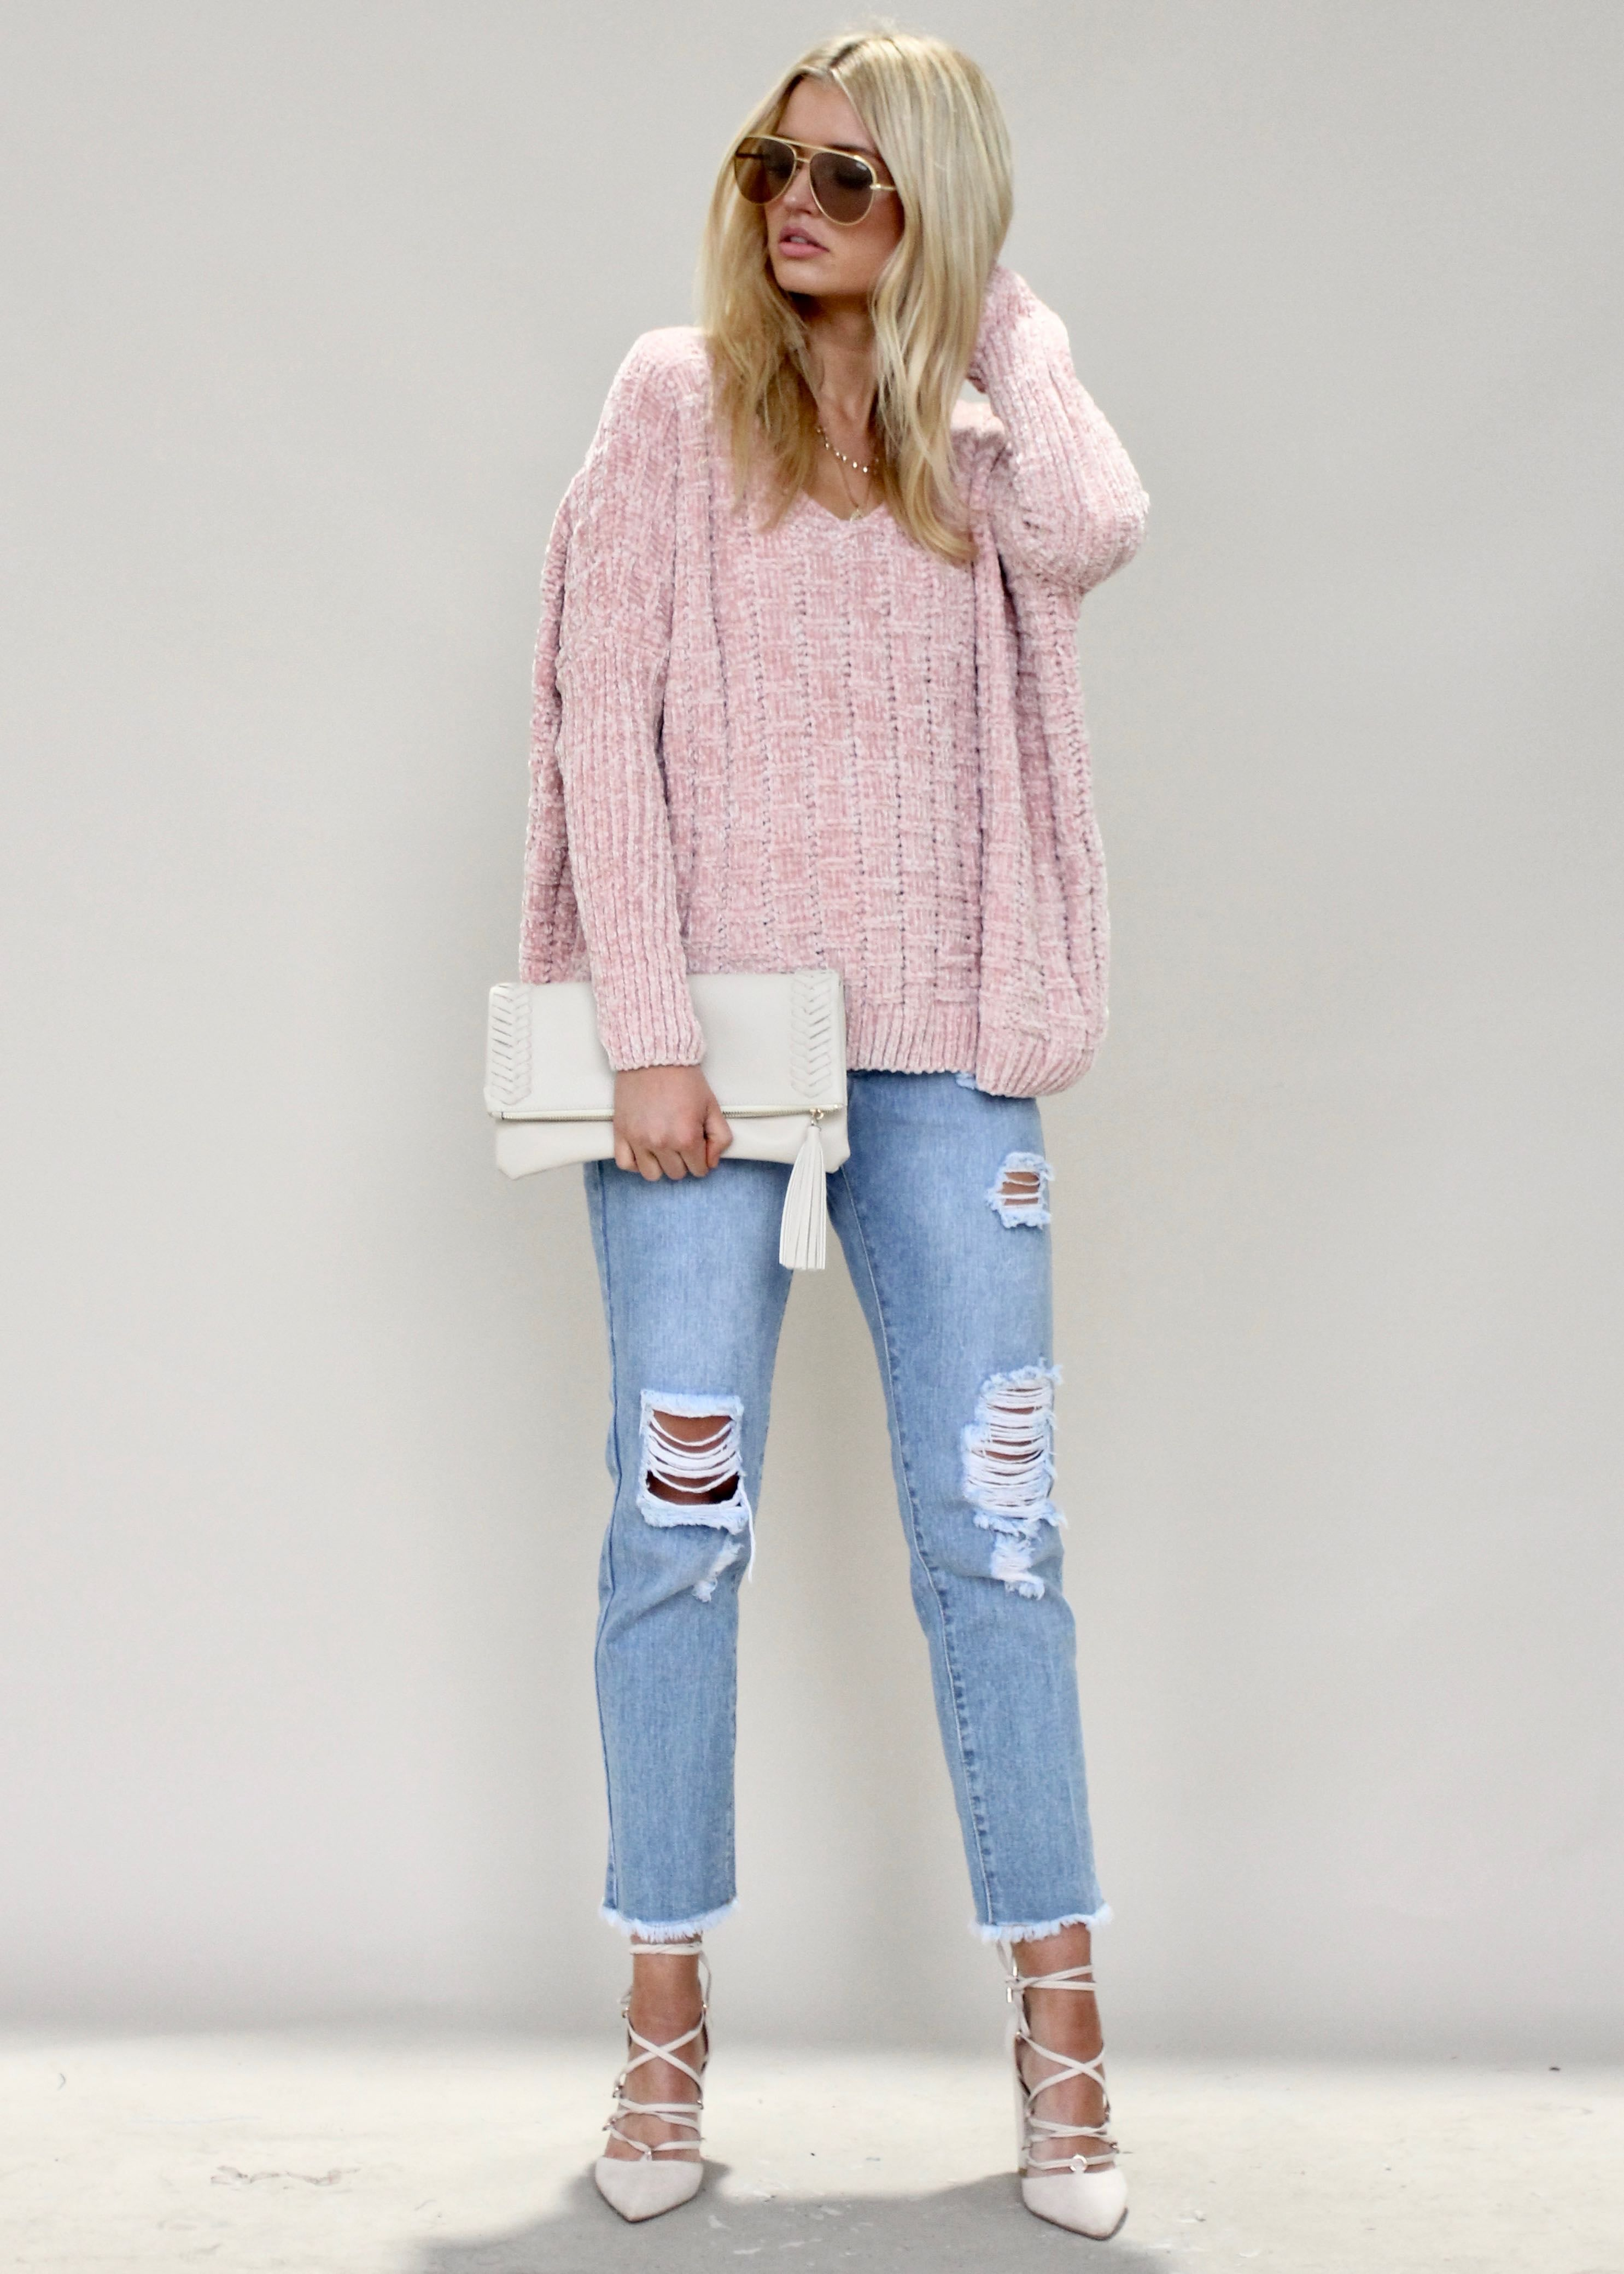 On Your Side Chenille Sweater - Pink